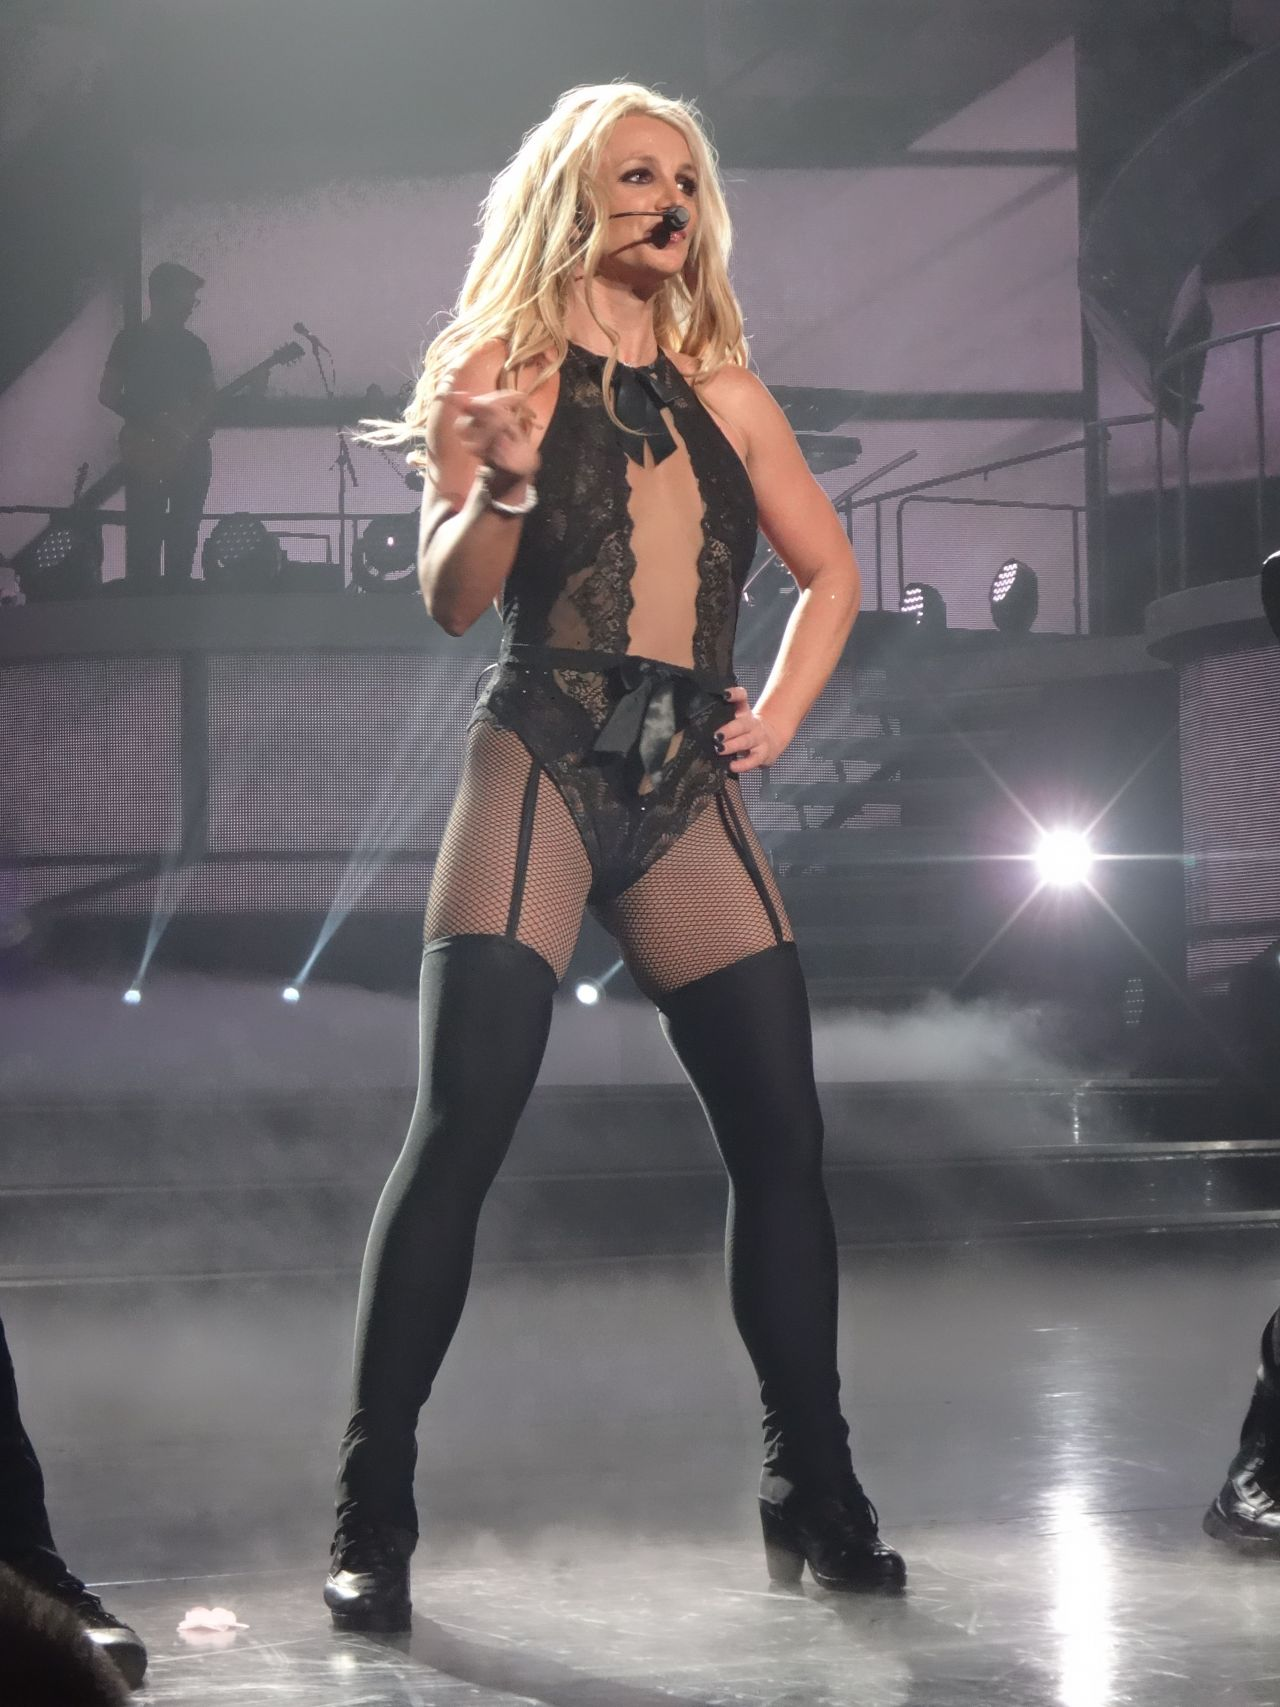 Britney spears performs at axis in las vegas nudes (25 photos), Is a cute Celebrity image